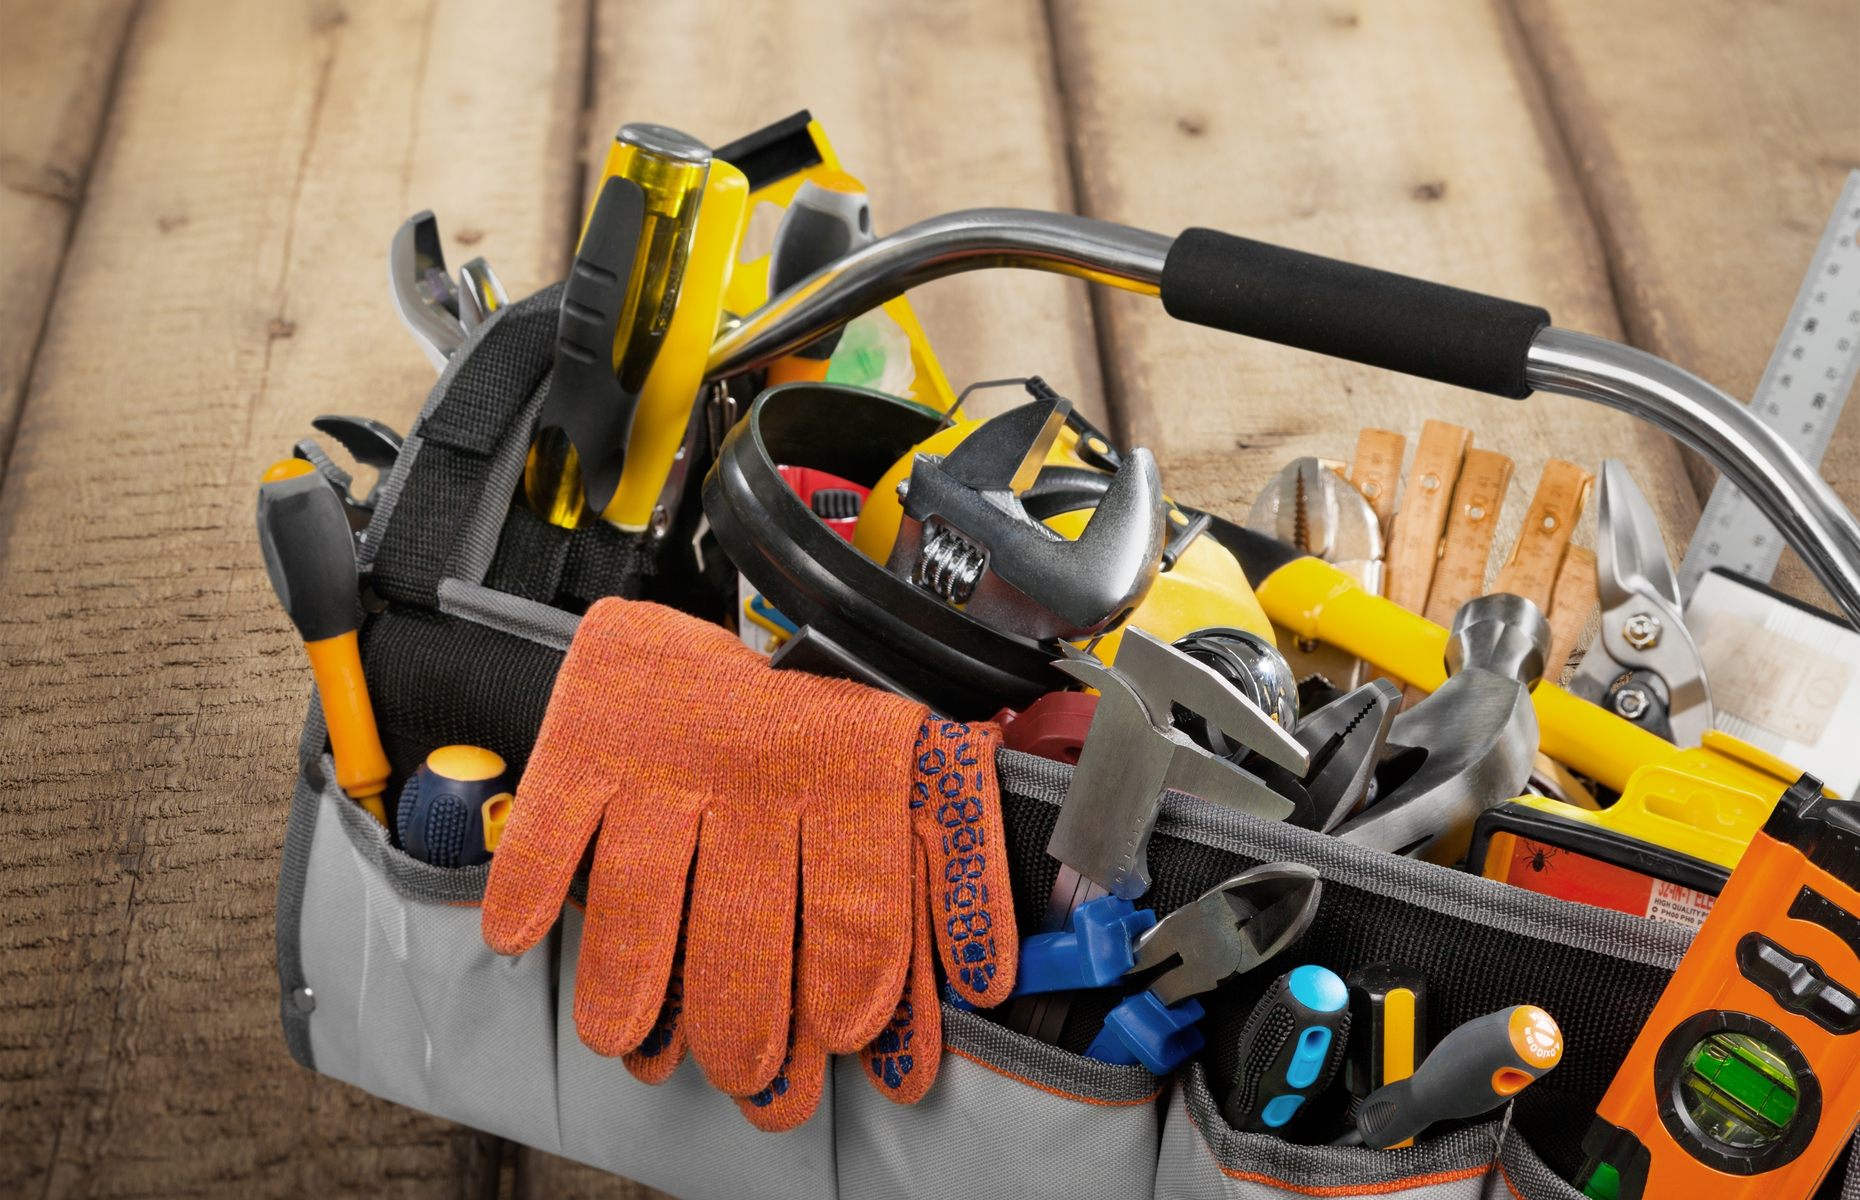 Without regular maintenance, dirt and debris can easily build up on handheld tools. Image: Billion Photos / Shutterstock